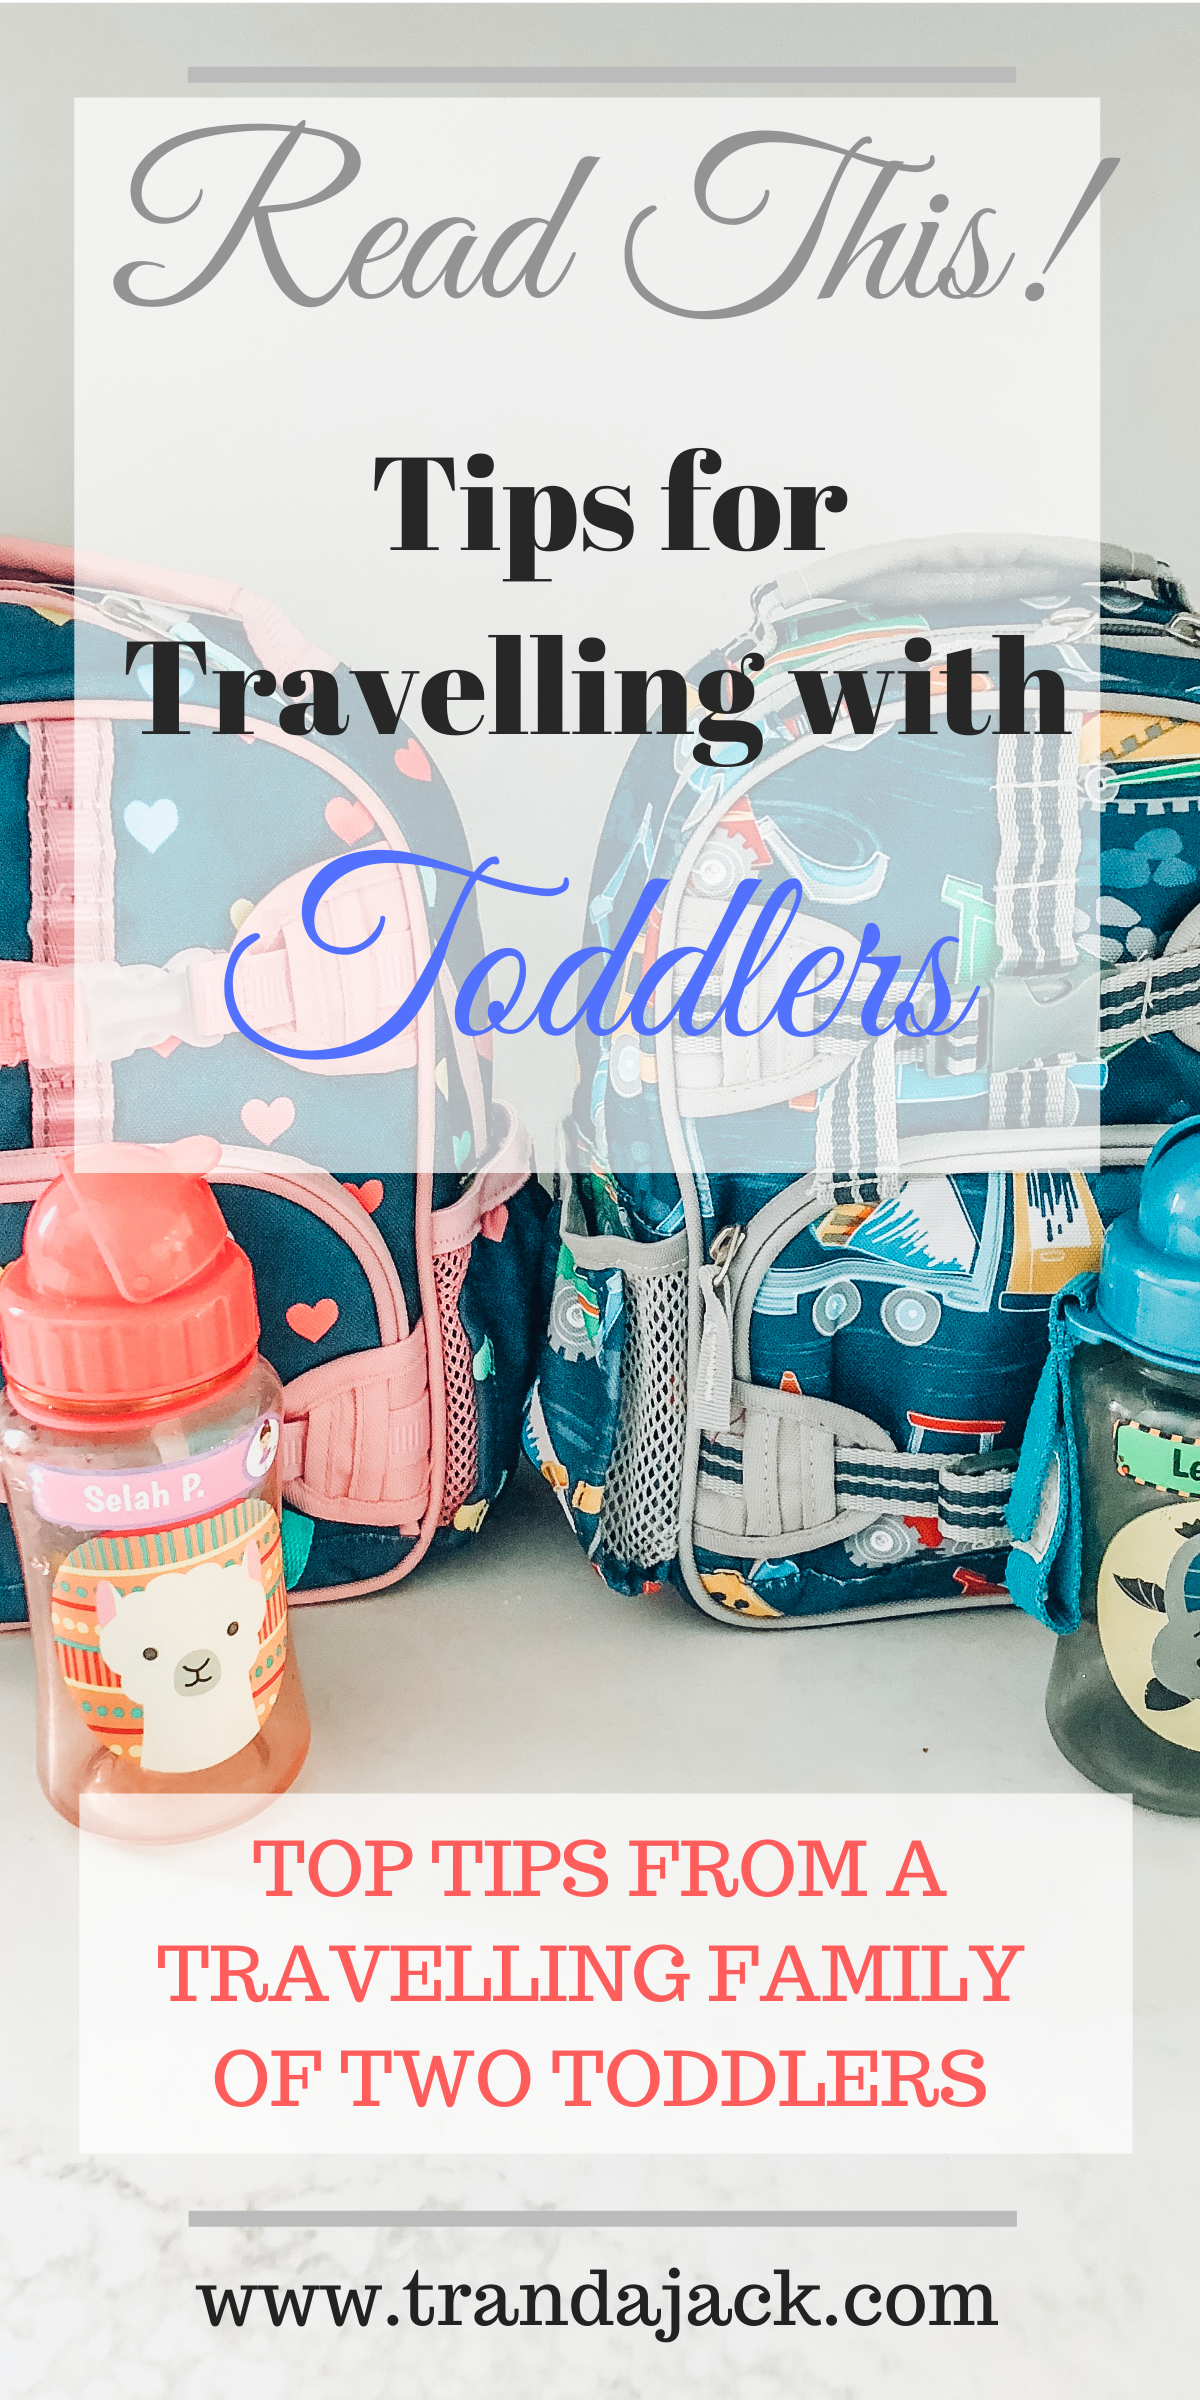 Travel Tips For Toddlers